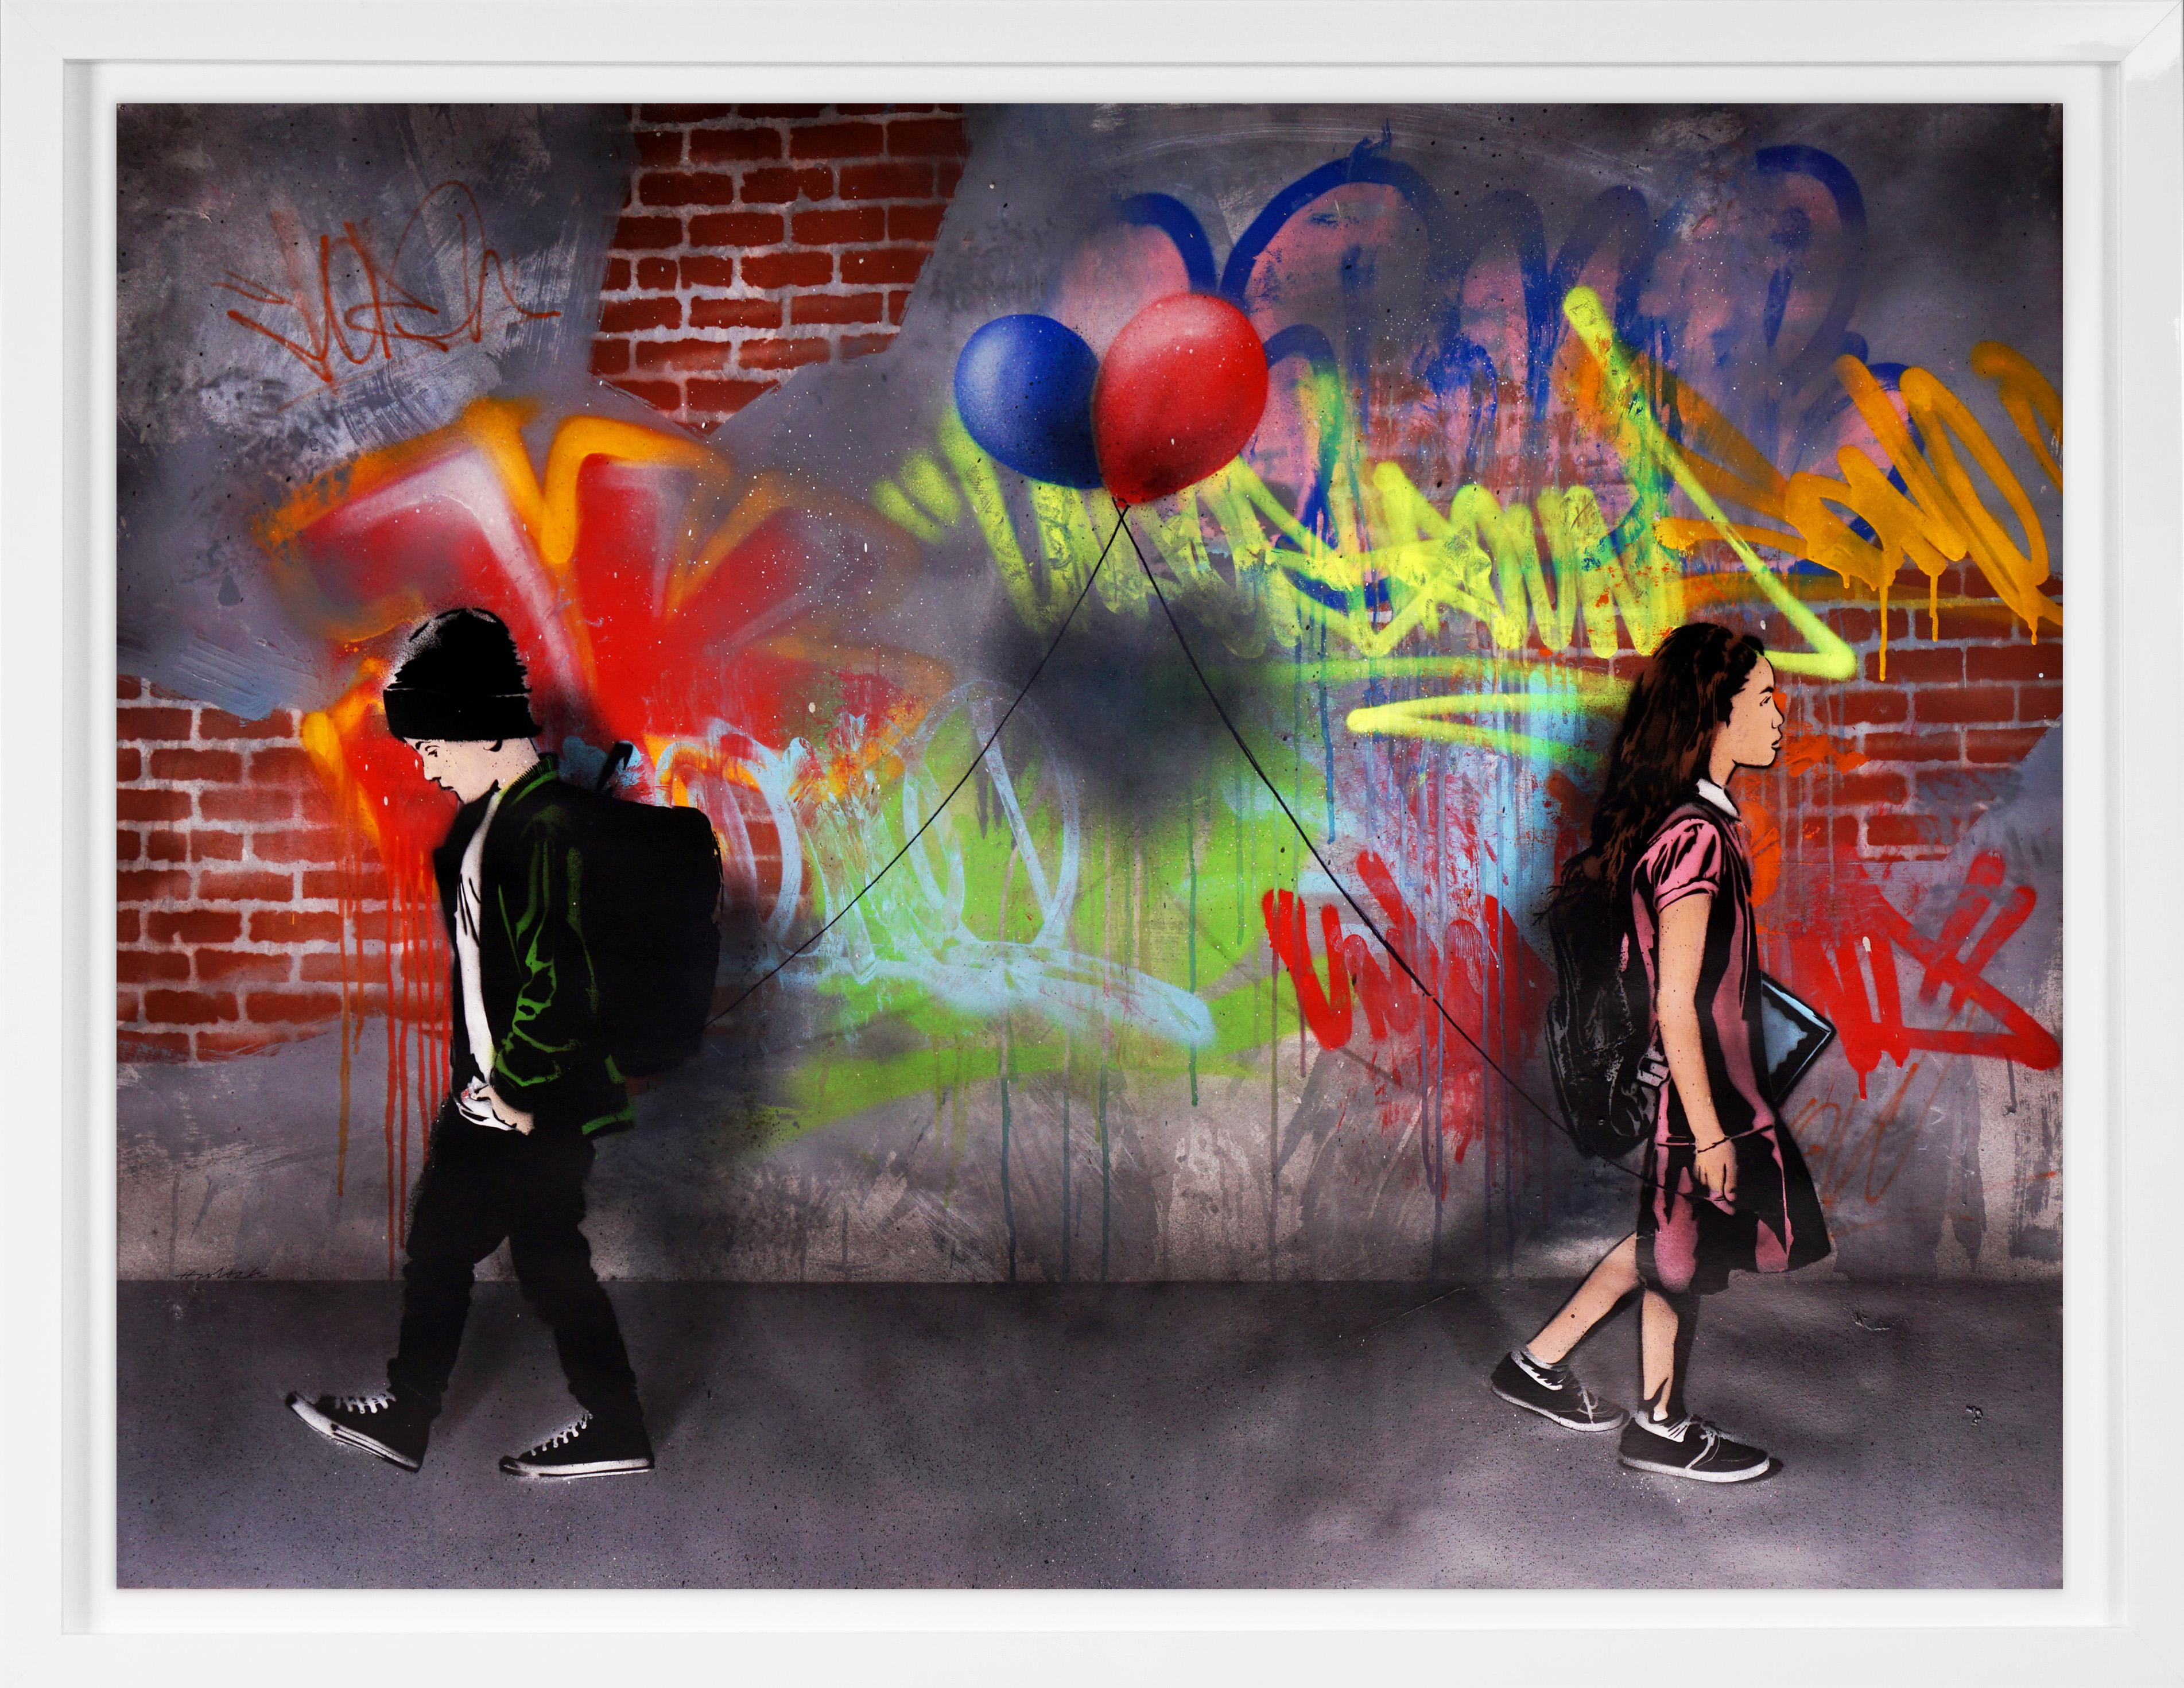 'Static Love with Balloons' Graffiti Street Art Painting, Unique, 2021